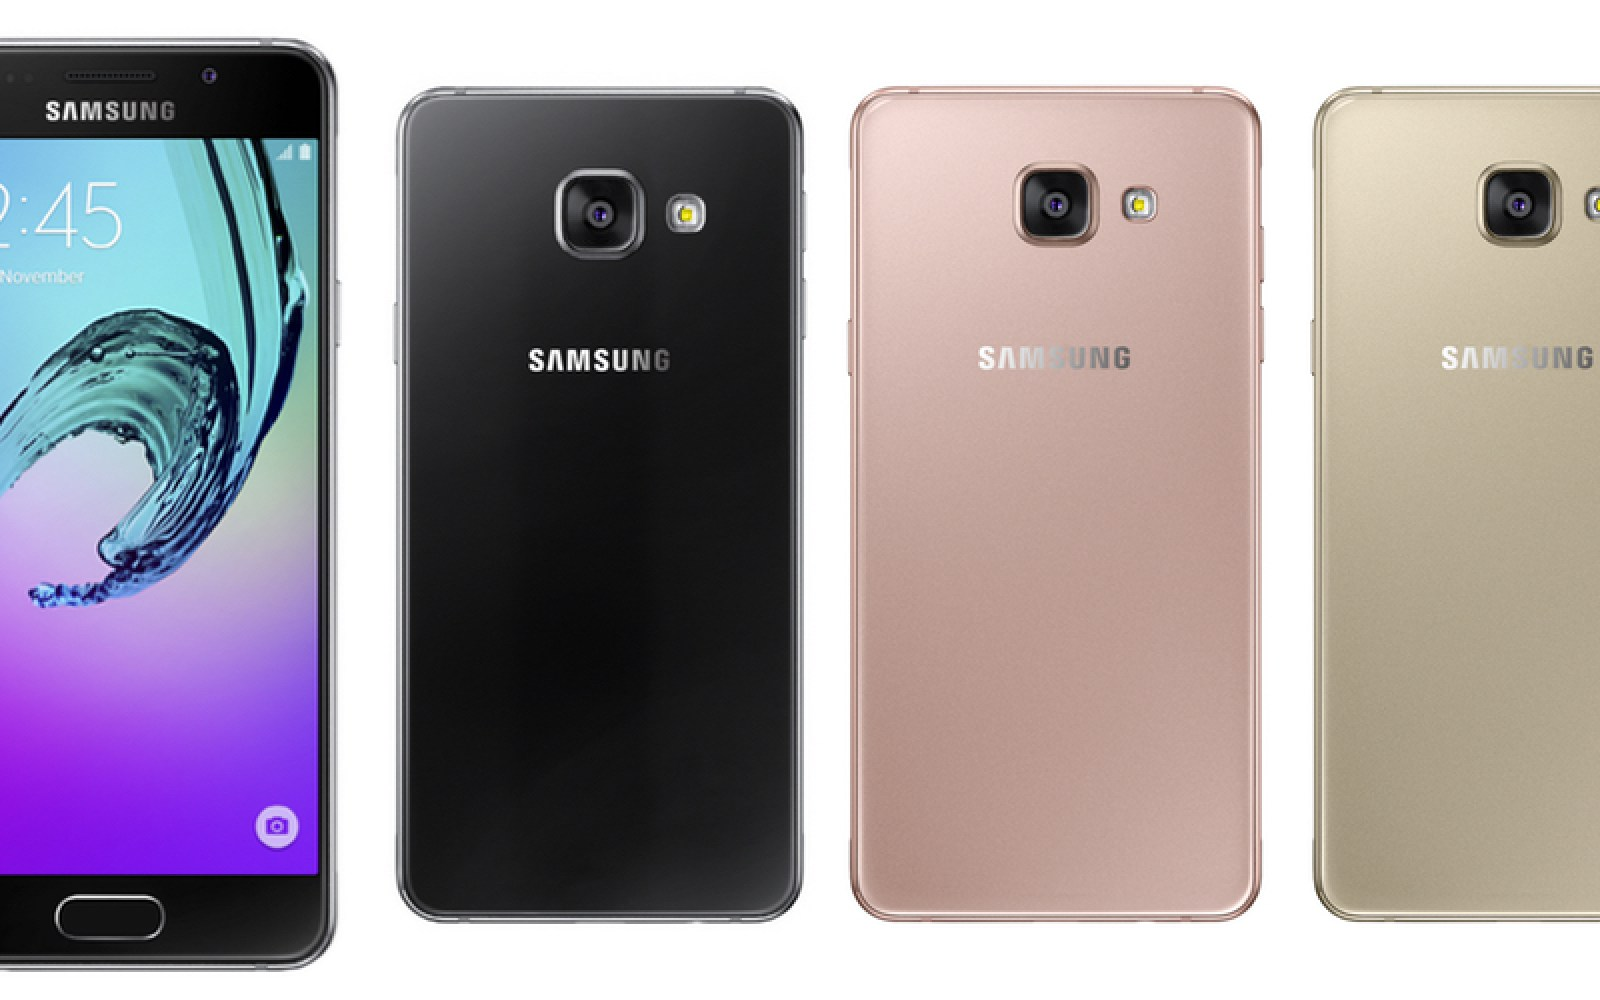 2016 Samsung Galaxy A3, A5 and A7 officially announced, equipped with fast-charging, Samsung Pay support, OIS cameras, more